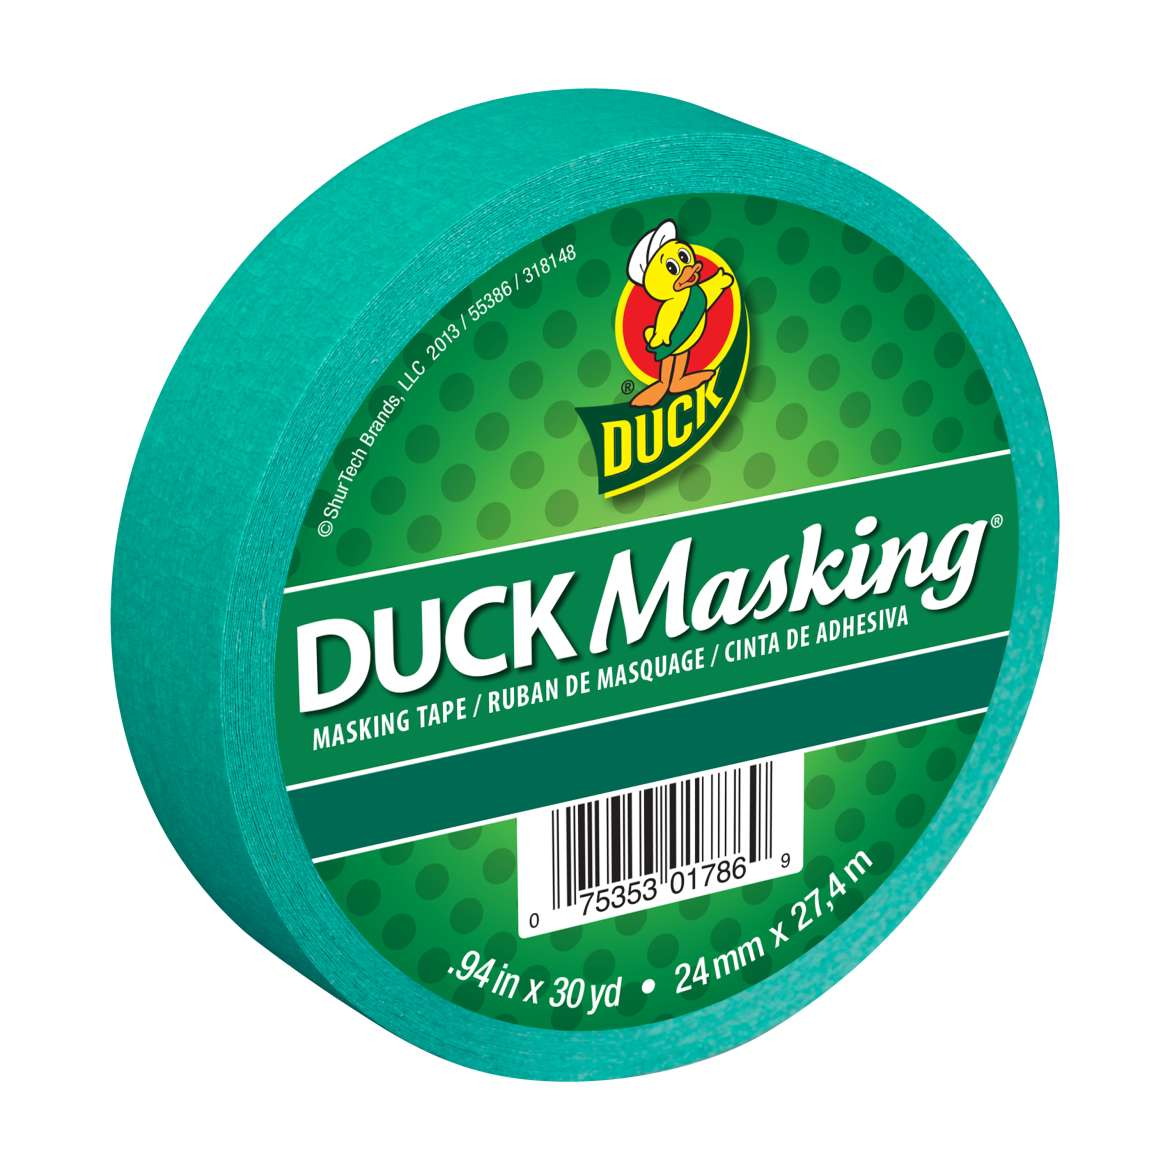 Duck Masking® Color Masking Tape - Green, .94 in. x 30 yd. Image